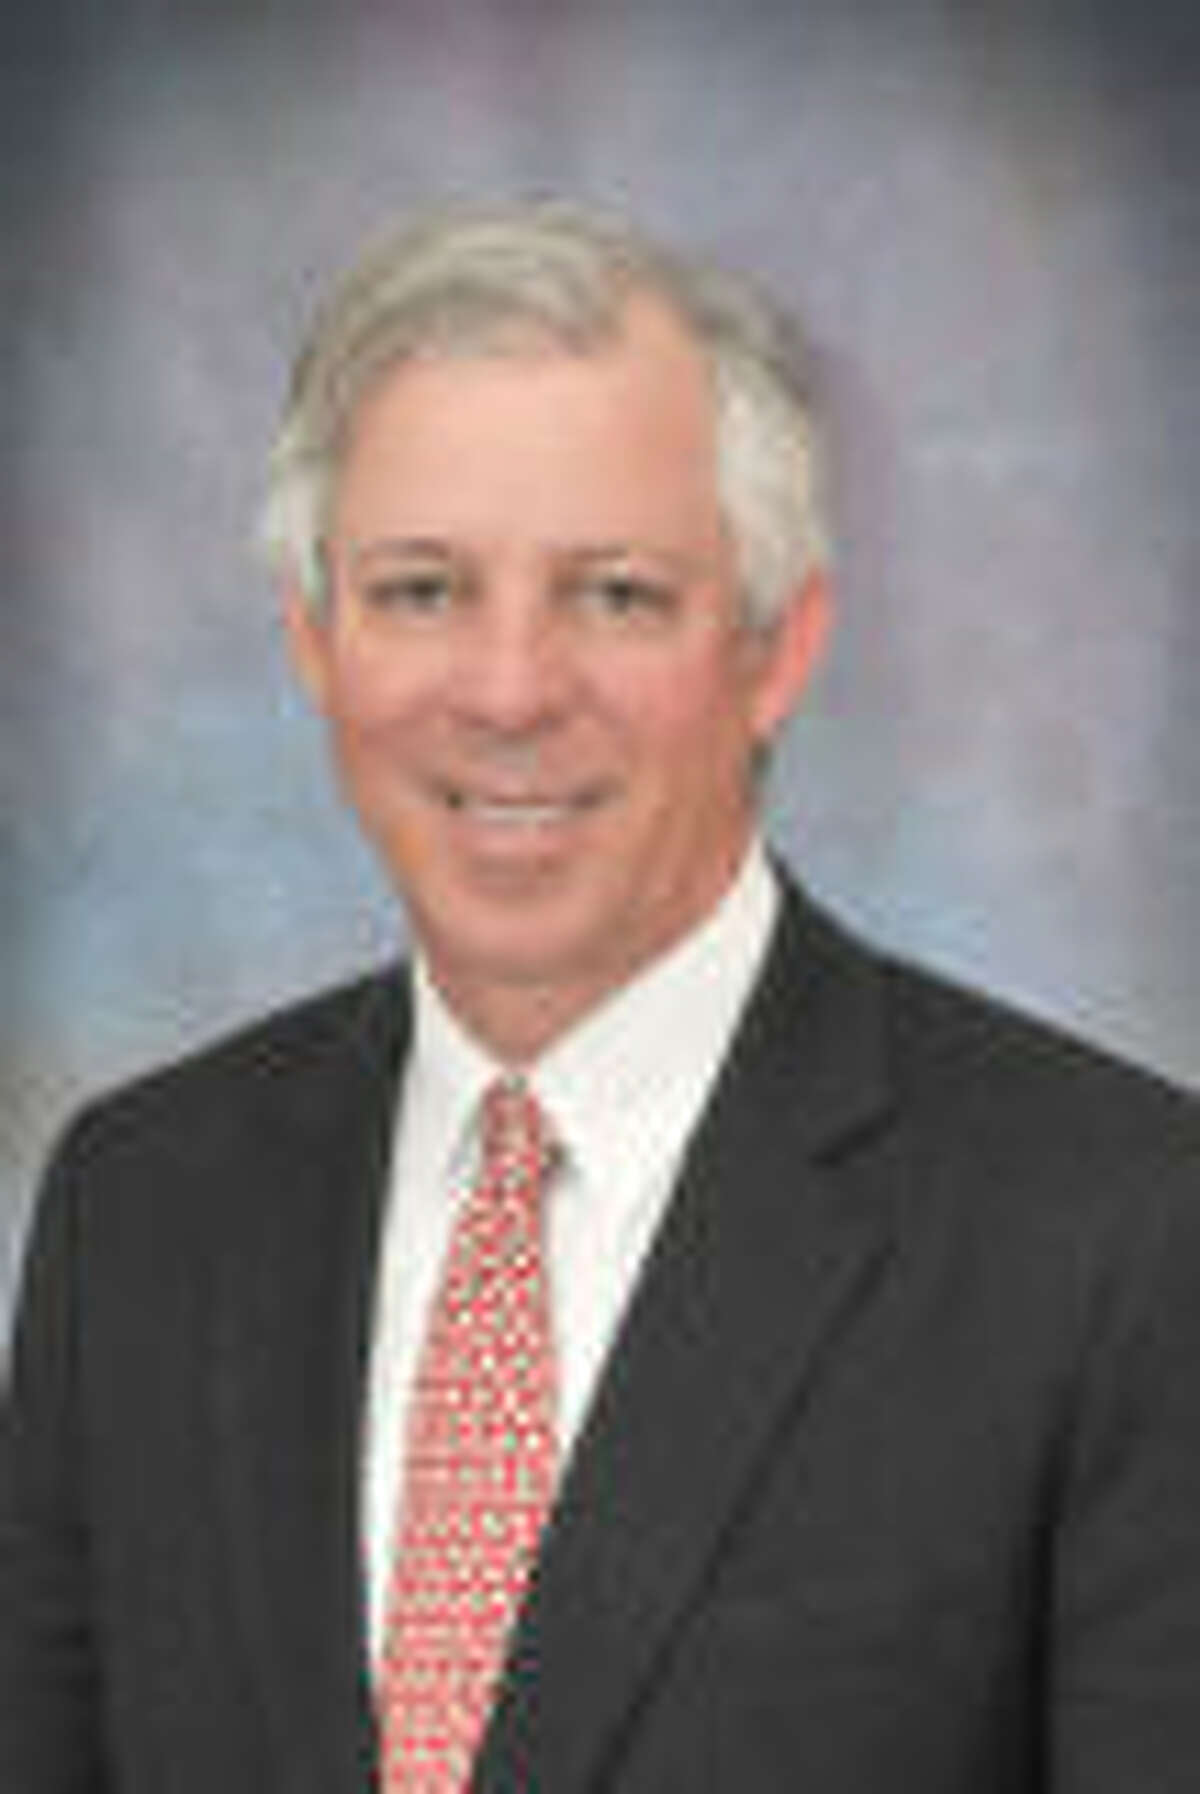 Robert C. Robbins, M.D., President and Chief Executive Officer of Texas Medical Center